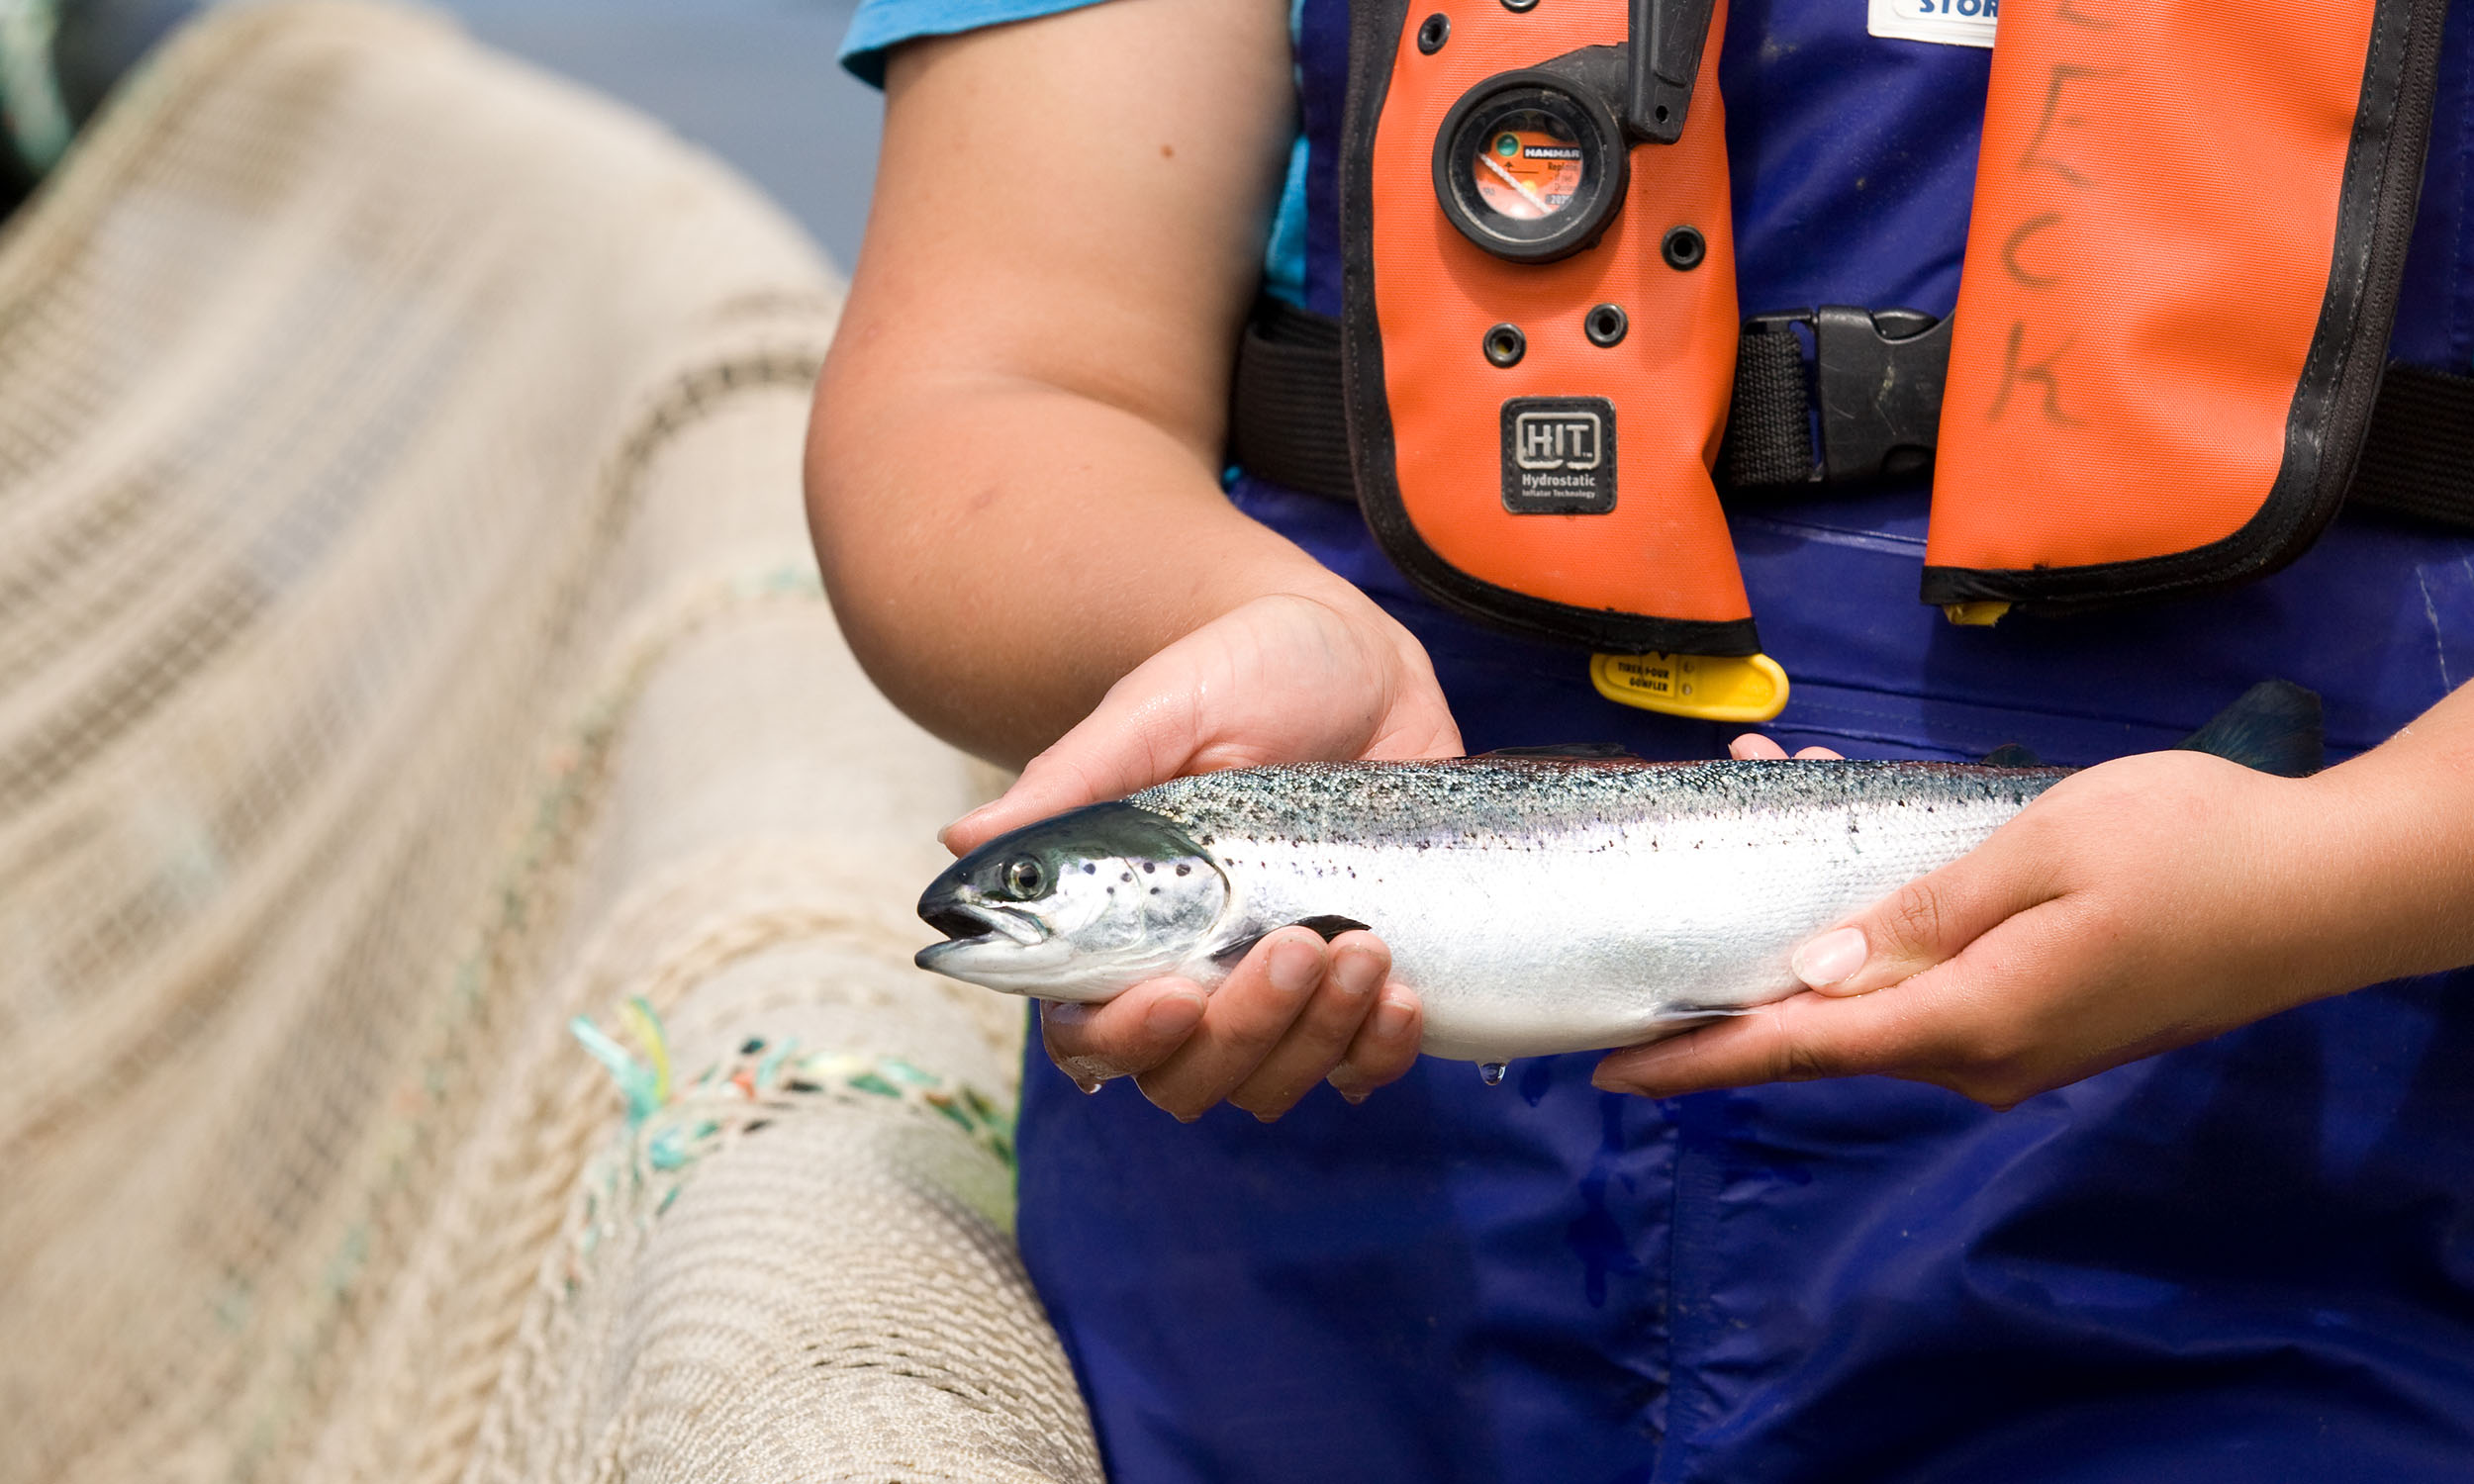 West_MHC salmon in hands.jpg